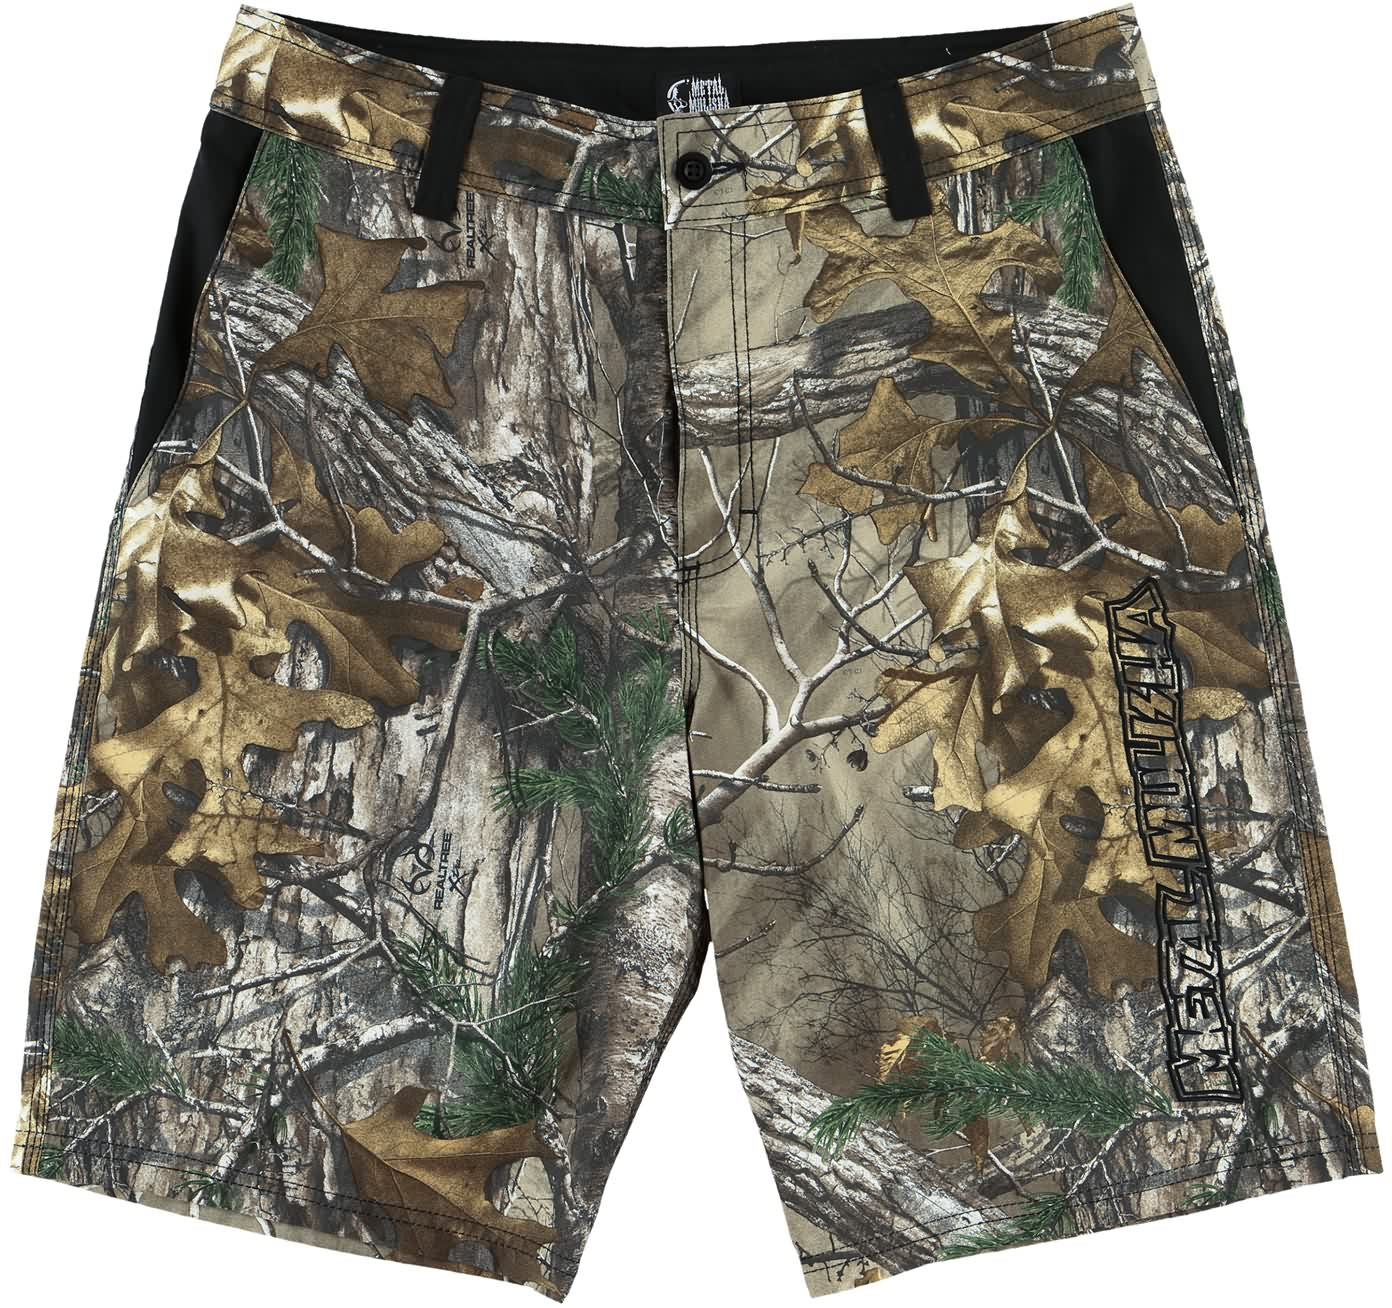 Metal Mulisha Spring 2017 Mens Walkshorts Hybrid Shorts Lookbook